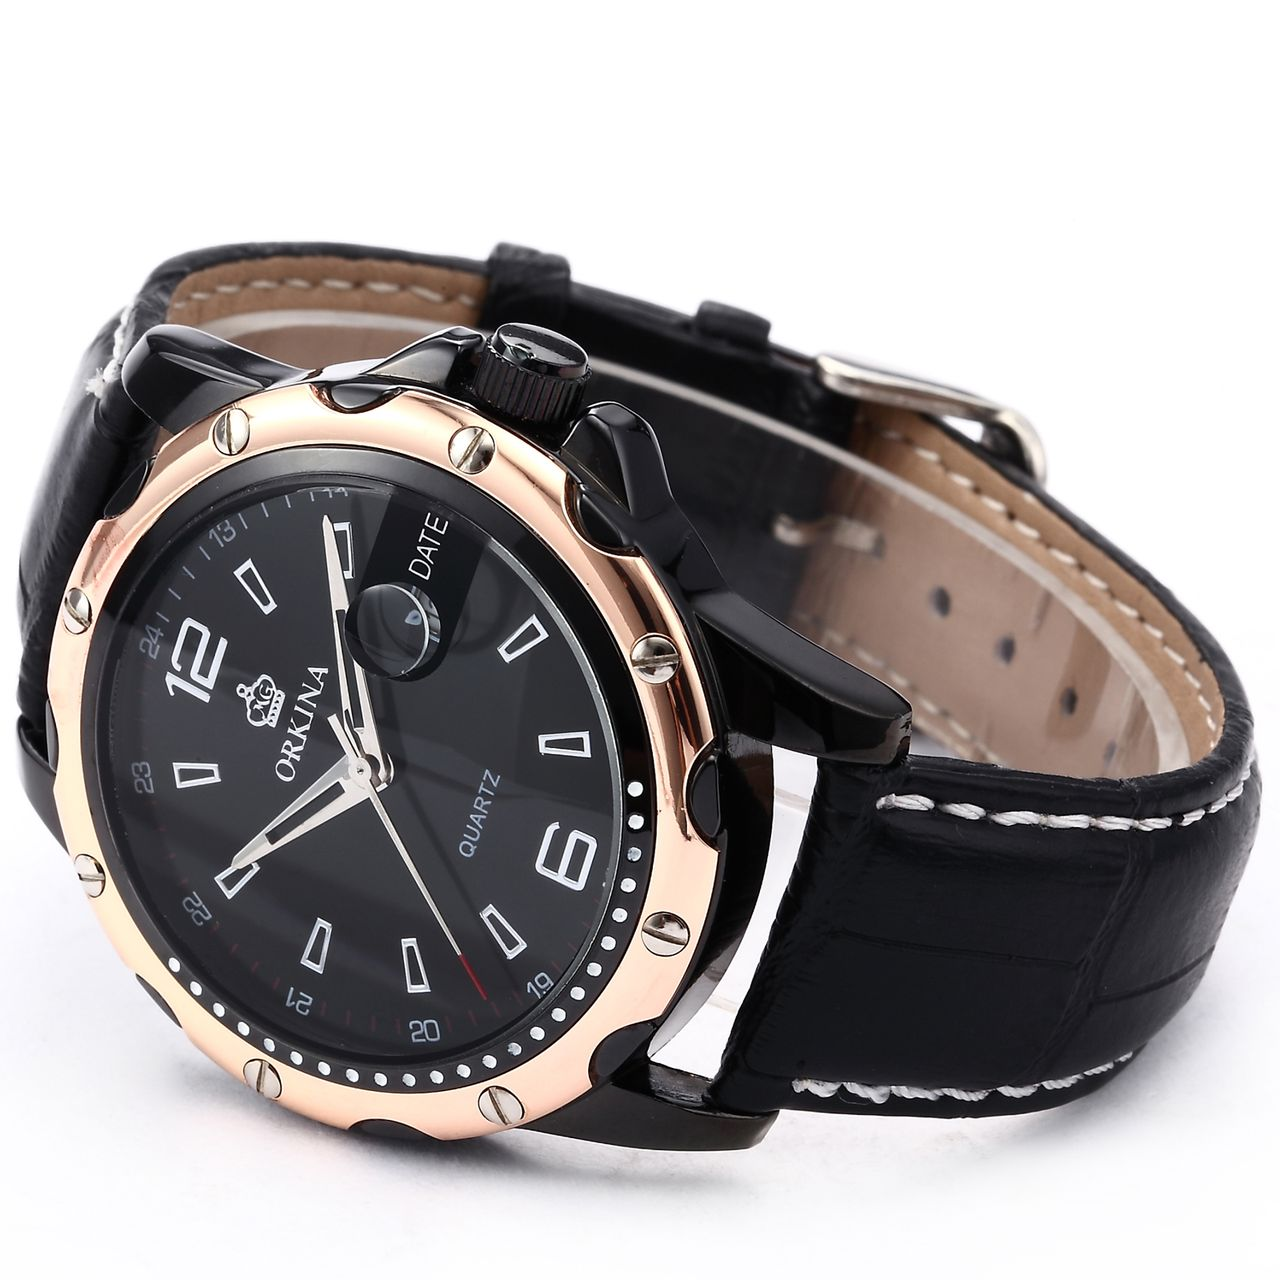 ORKINA Luxury Date Calendar Display Leather Men Wrist Quartz Sport Watch